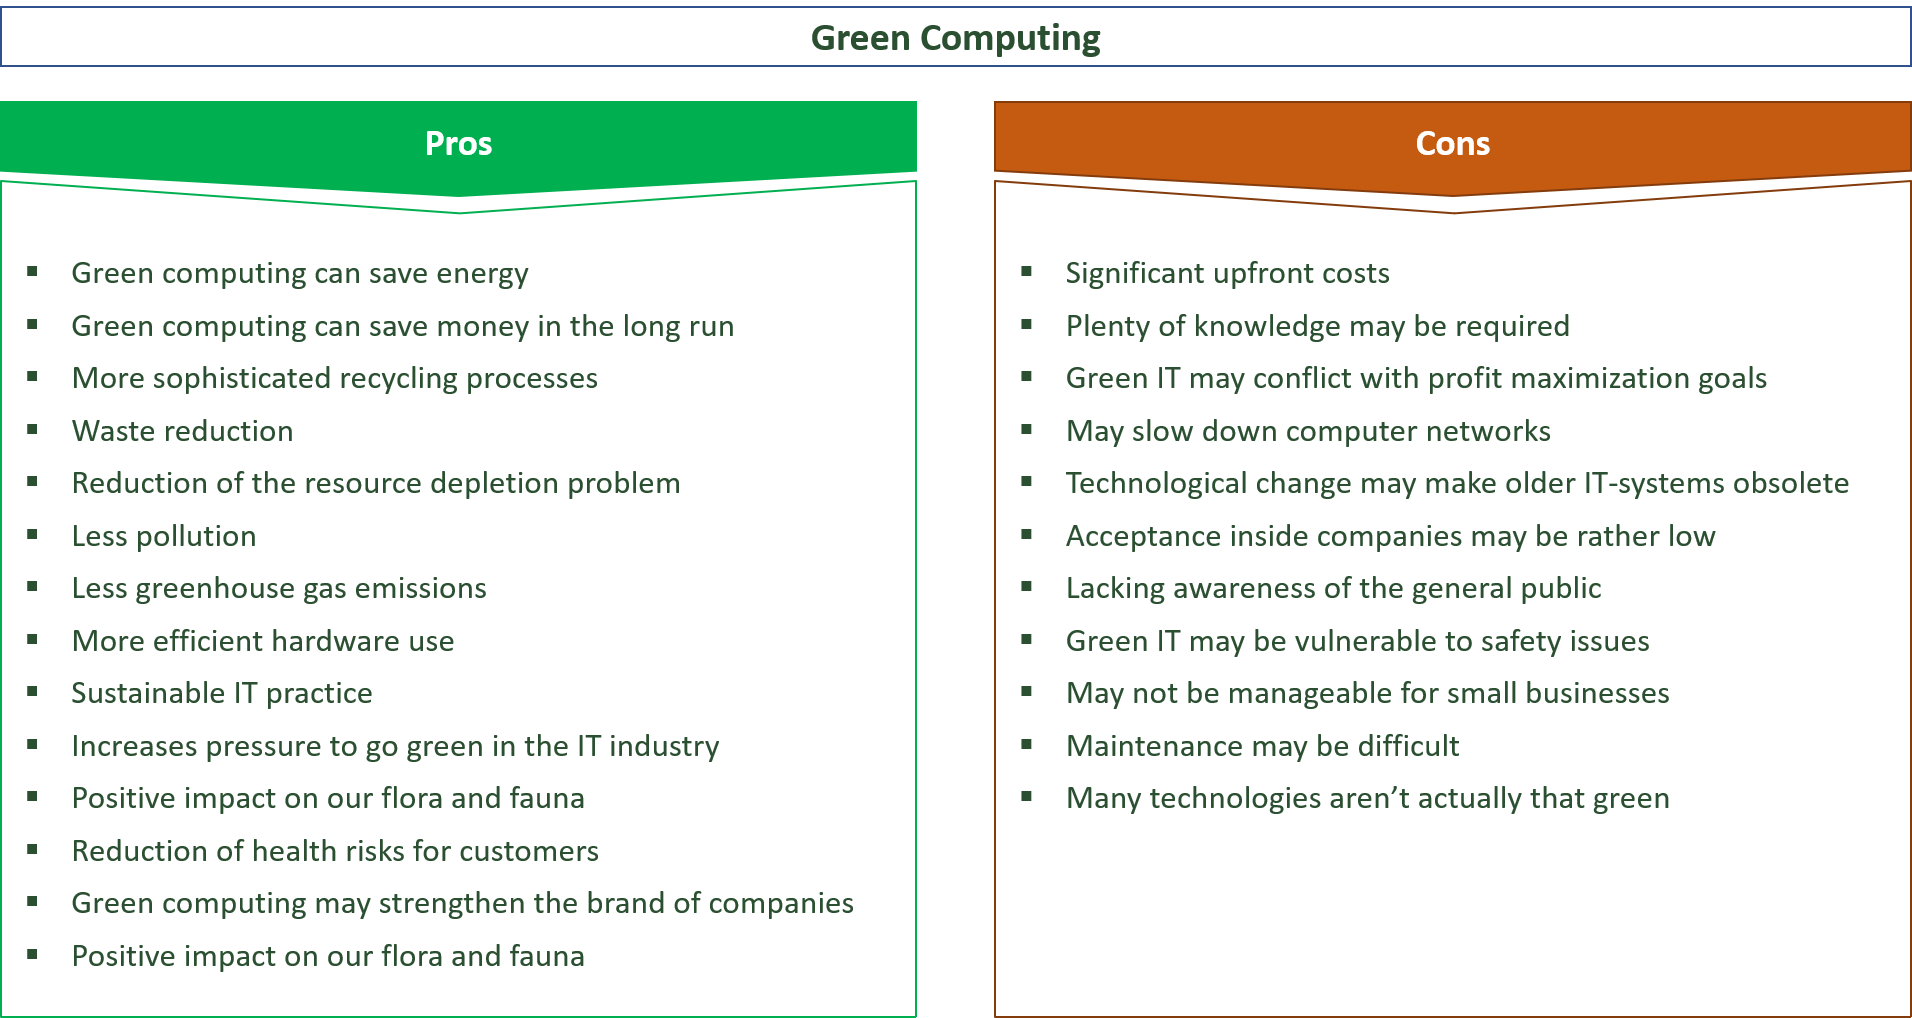 advantages and disadvantages of green IT